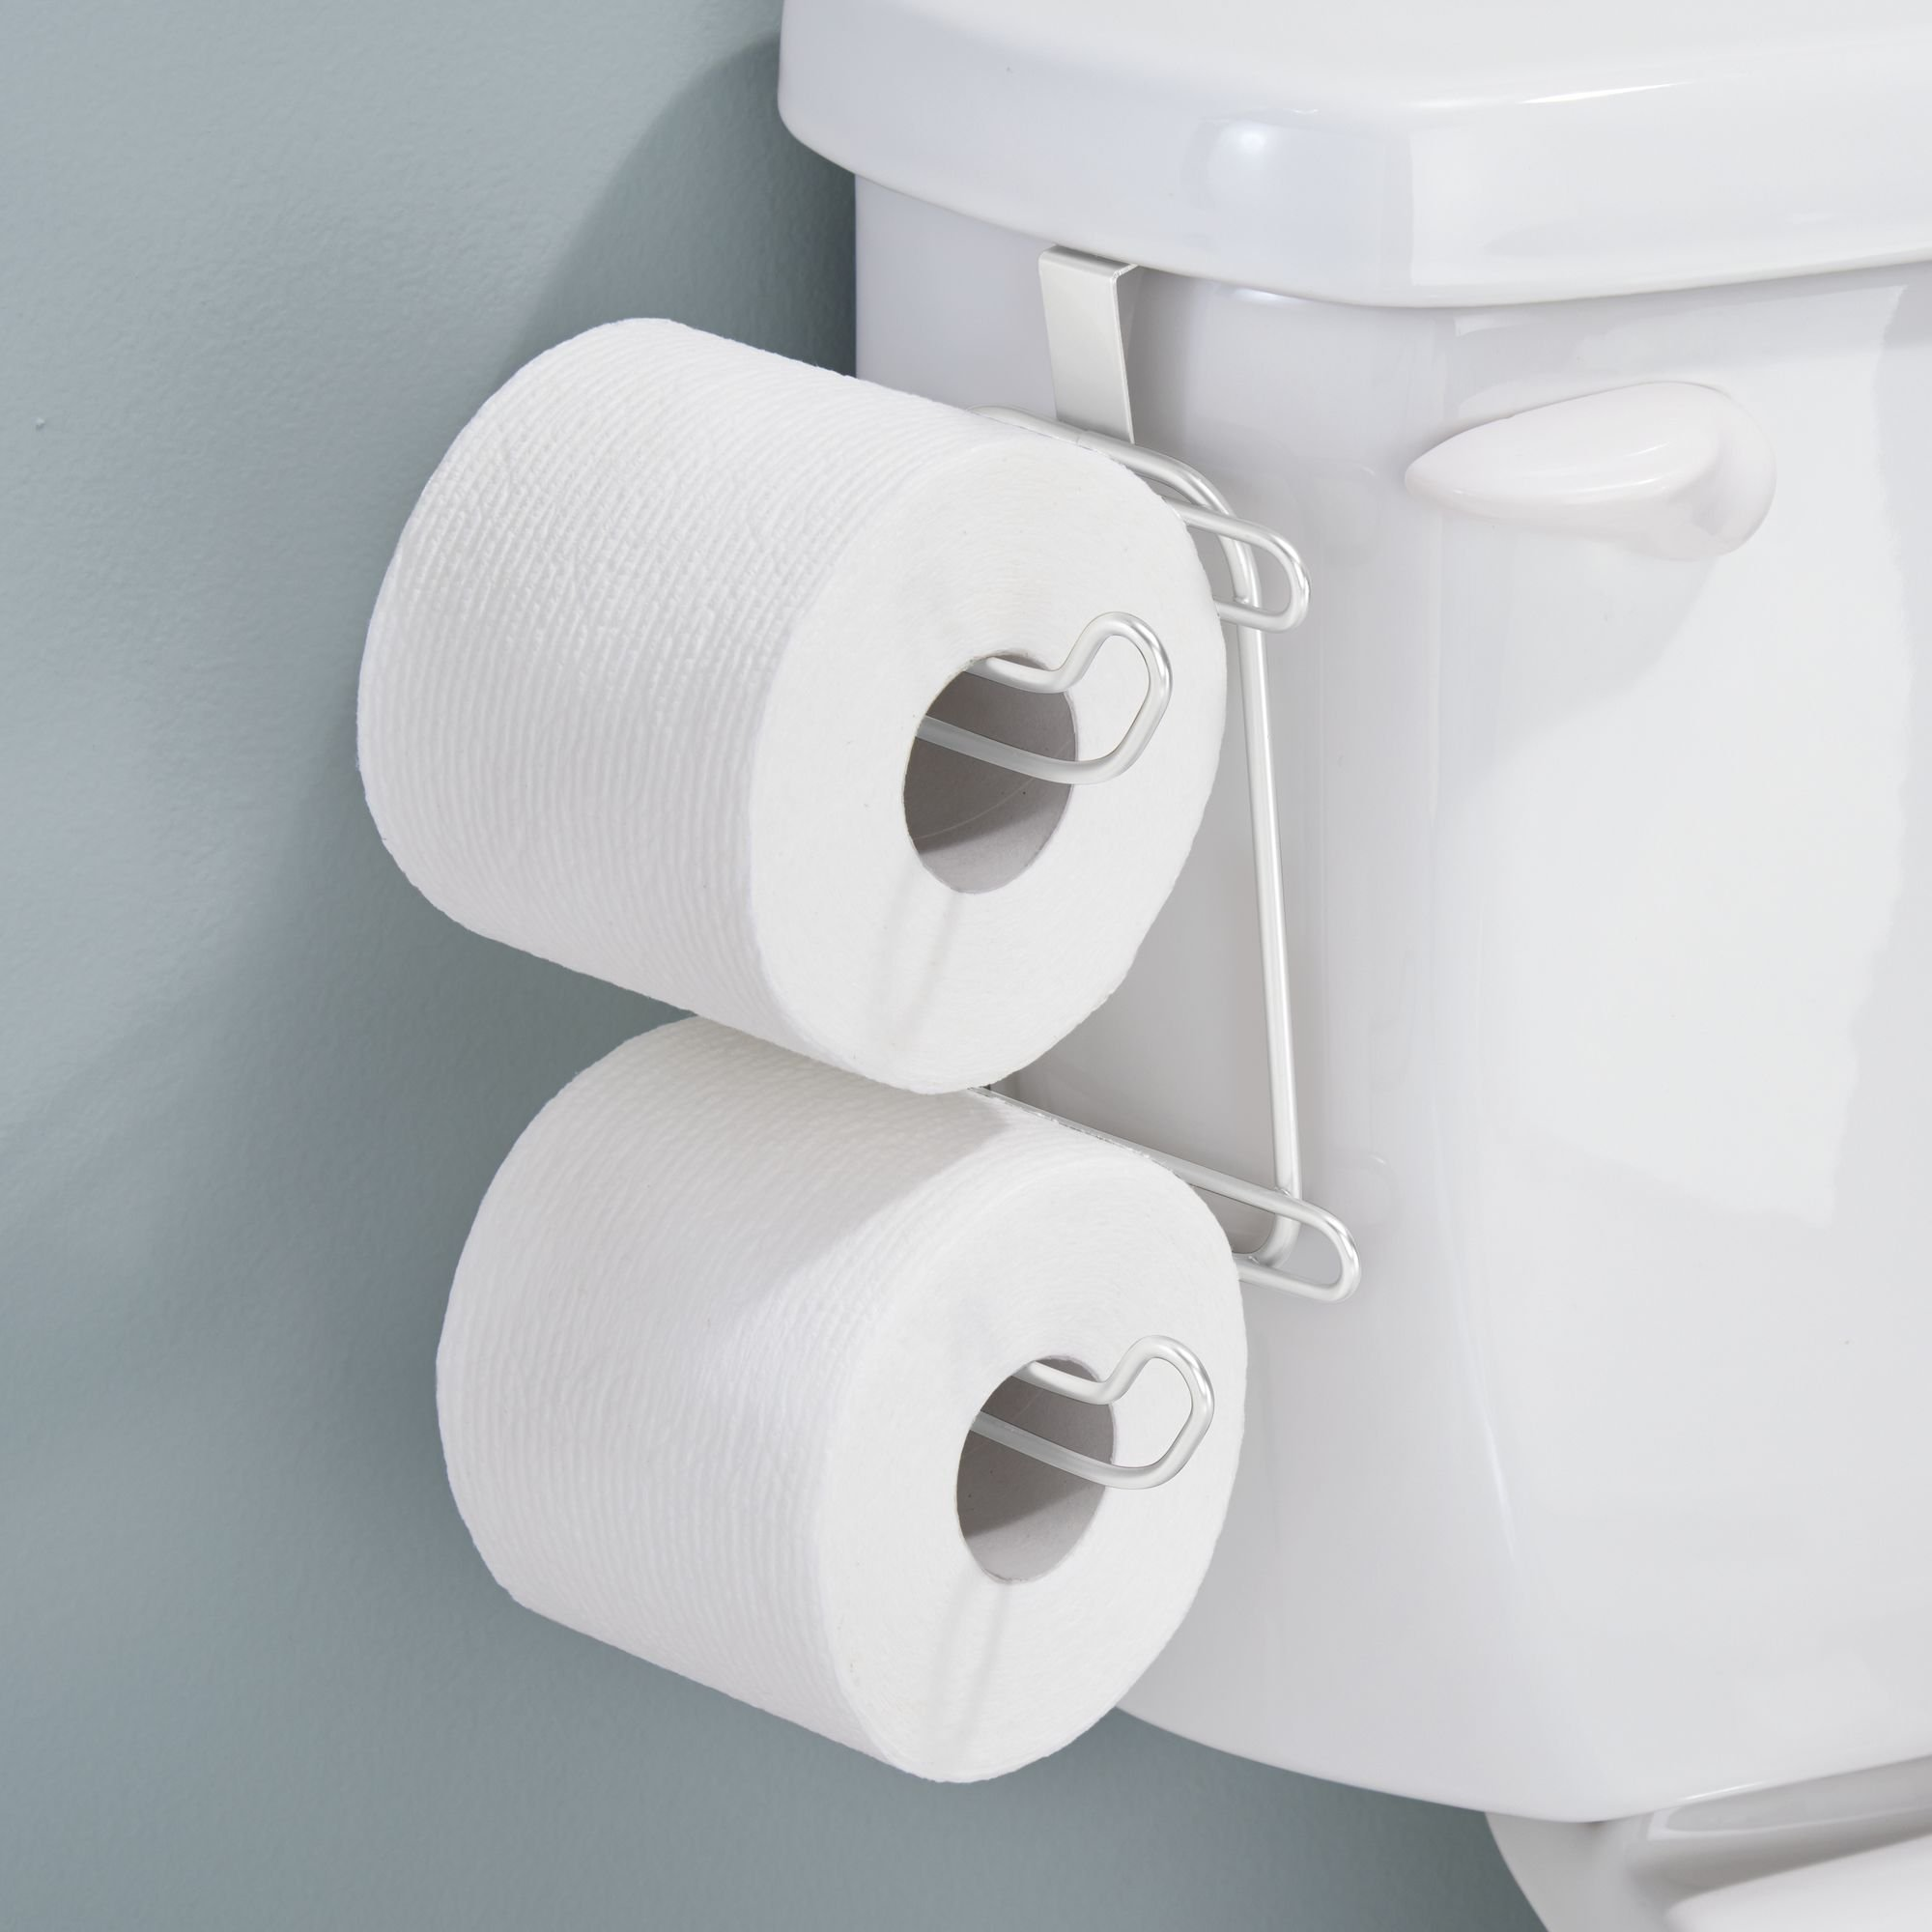 mDesign Compact Hanging Over The Tank Toilet Tissue Paper Roll Holder and Dispenser for Bathroom Storage - Holds 1 Extra Roll - Space Saving Design - Pack of 2, Durable Metal Wire in White Finish by mDesign (Image #3)